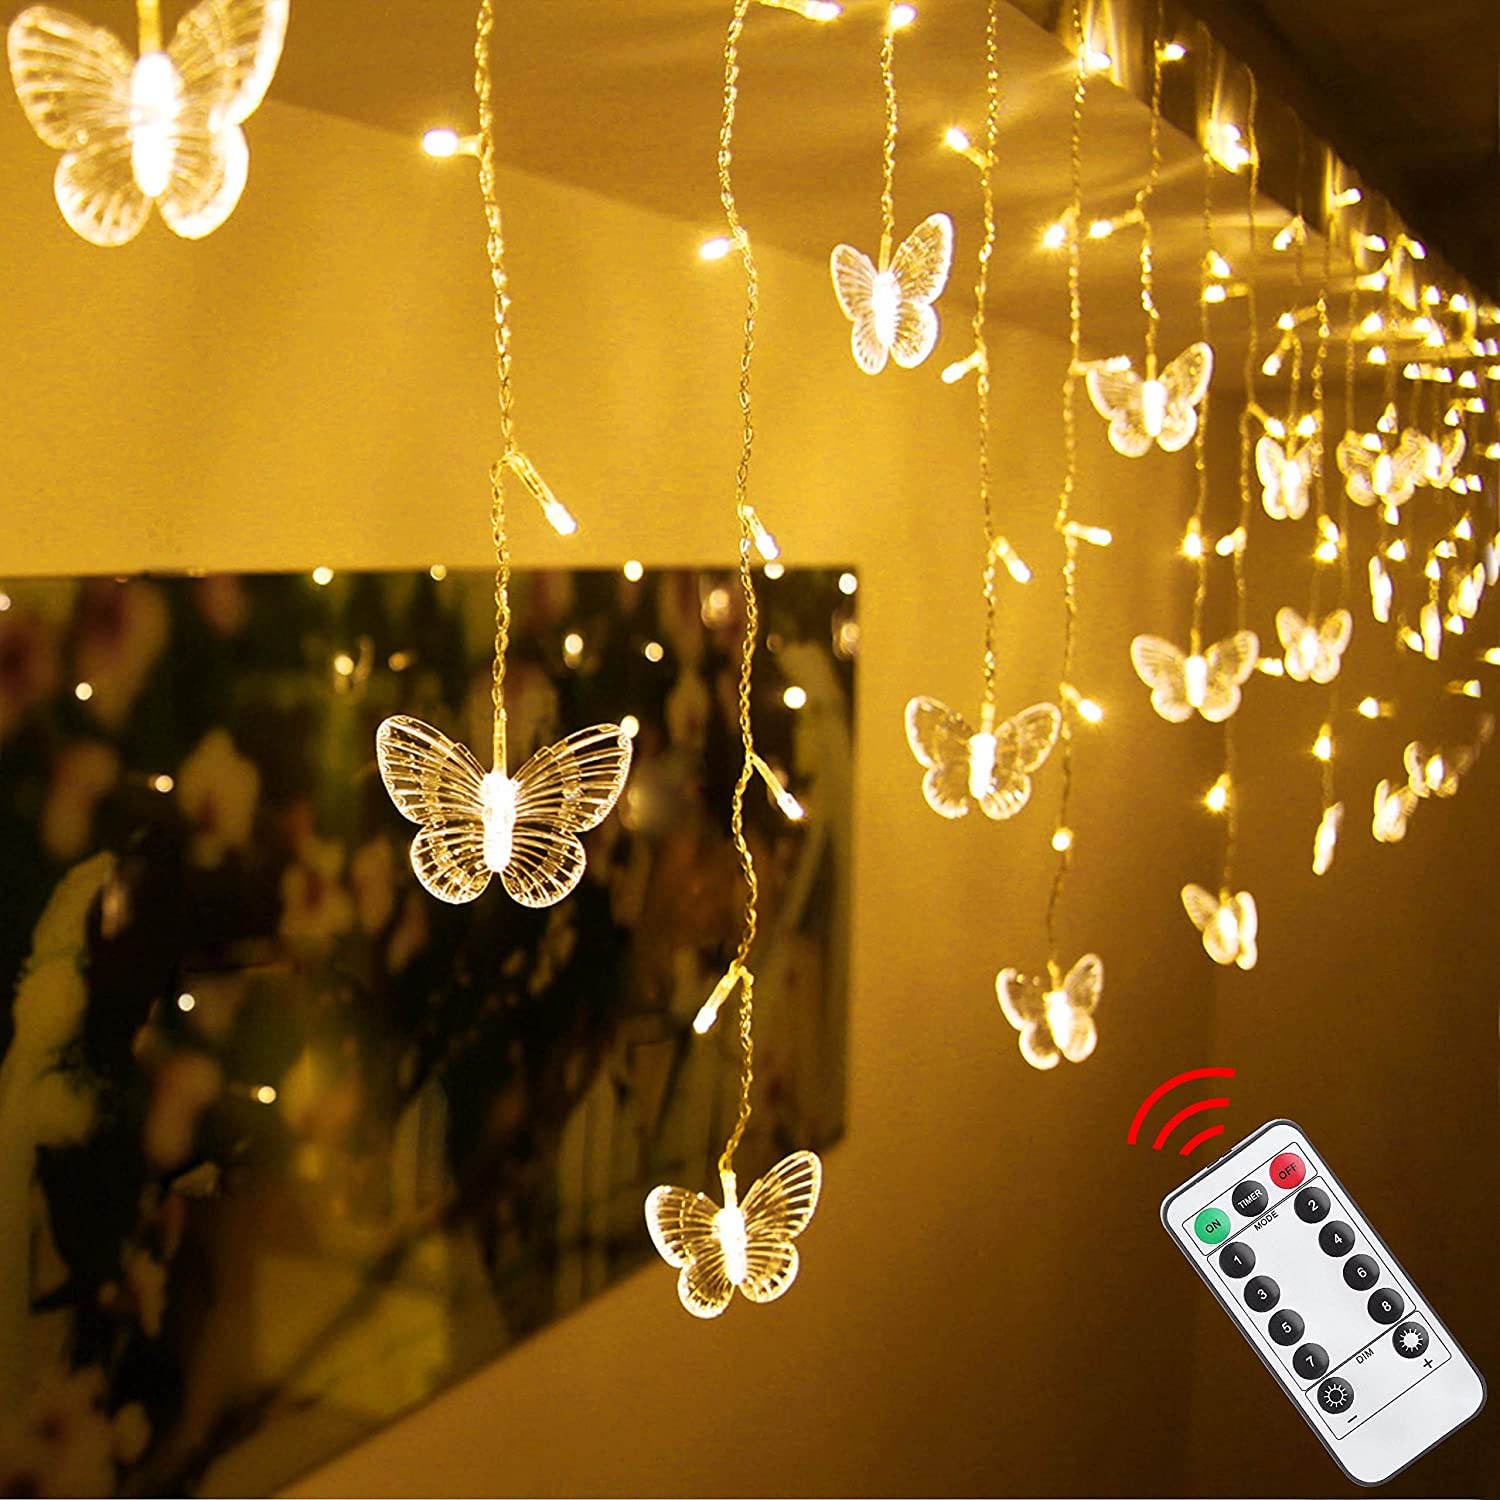 Decorman LED Curtain Lights 48 LED USB Powered 8 Modes Waterproof Window Twinkle String Lights with 10 Butterflies with Remote for Christmas Holiday Party Room Decor (4.9ft x 1.6ft, Warm White)